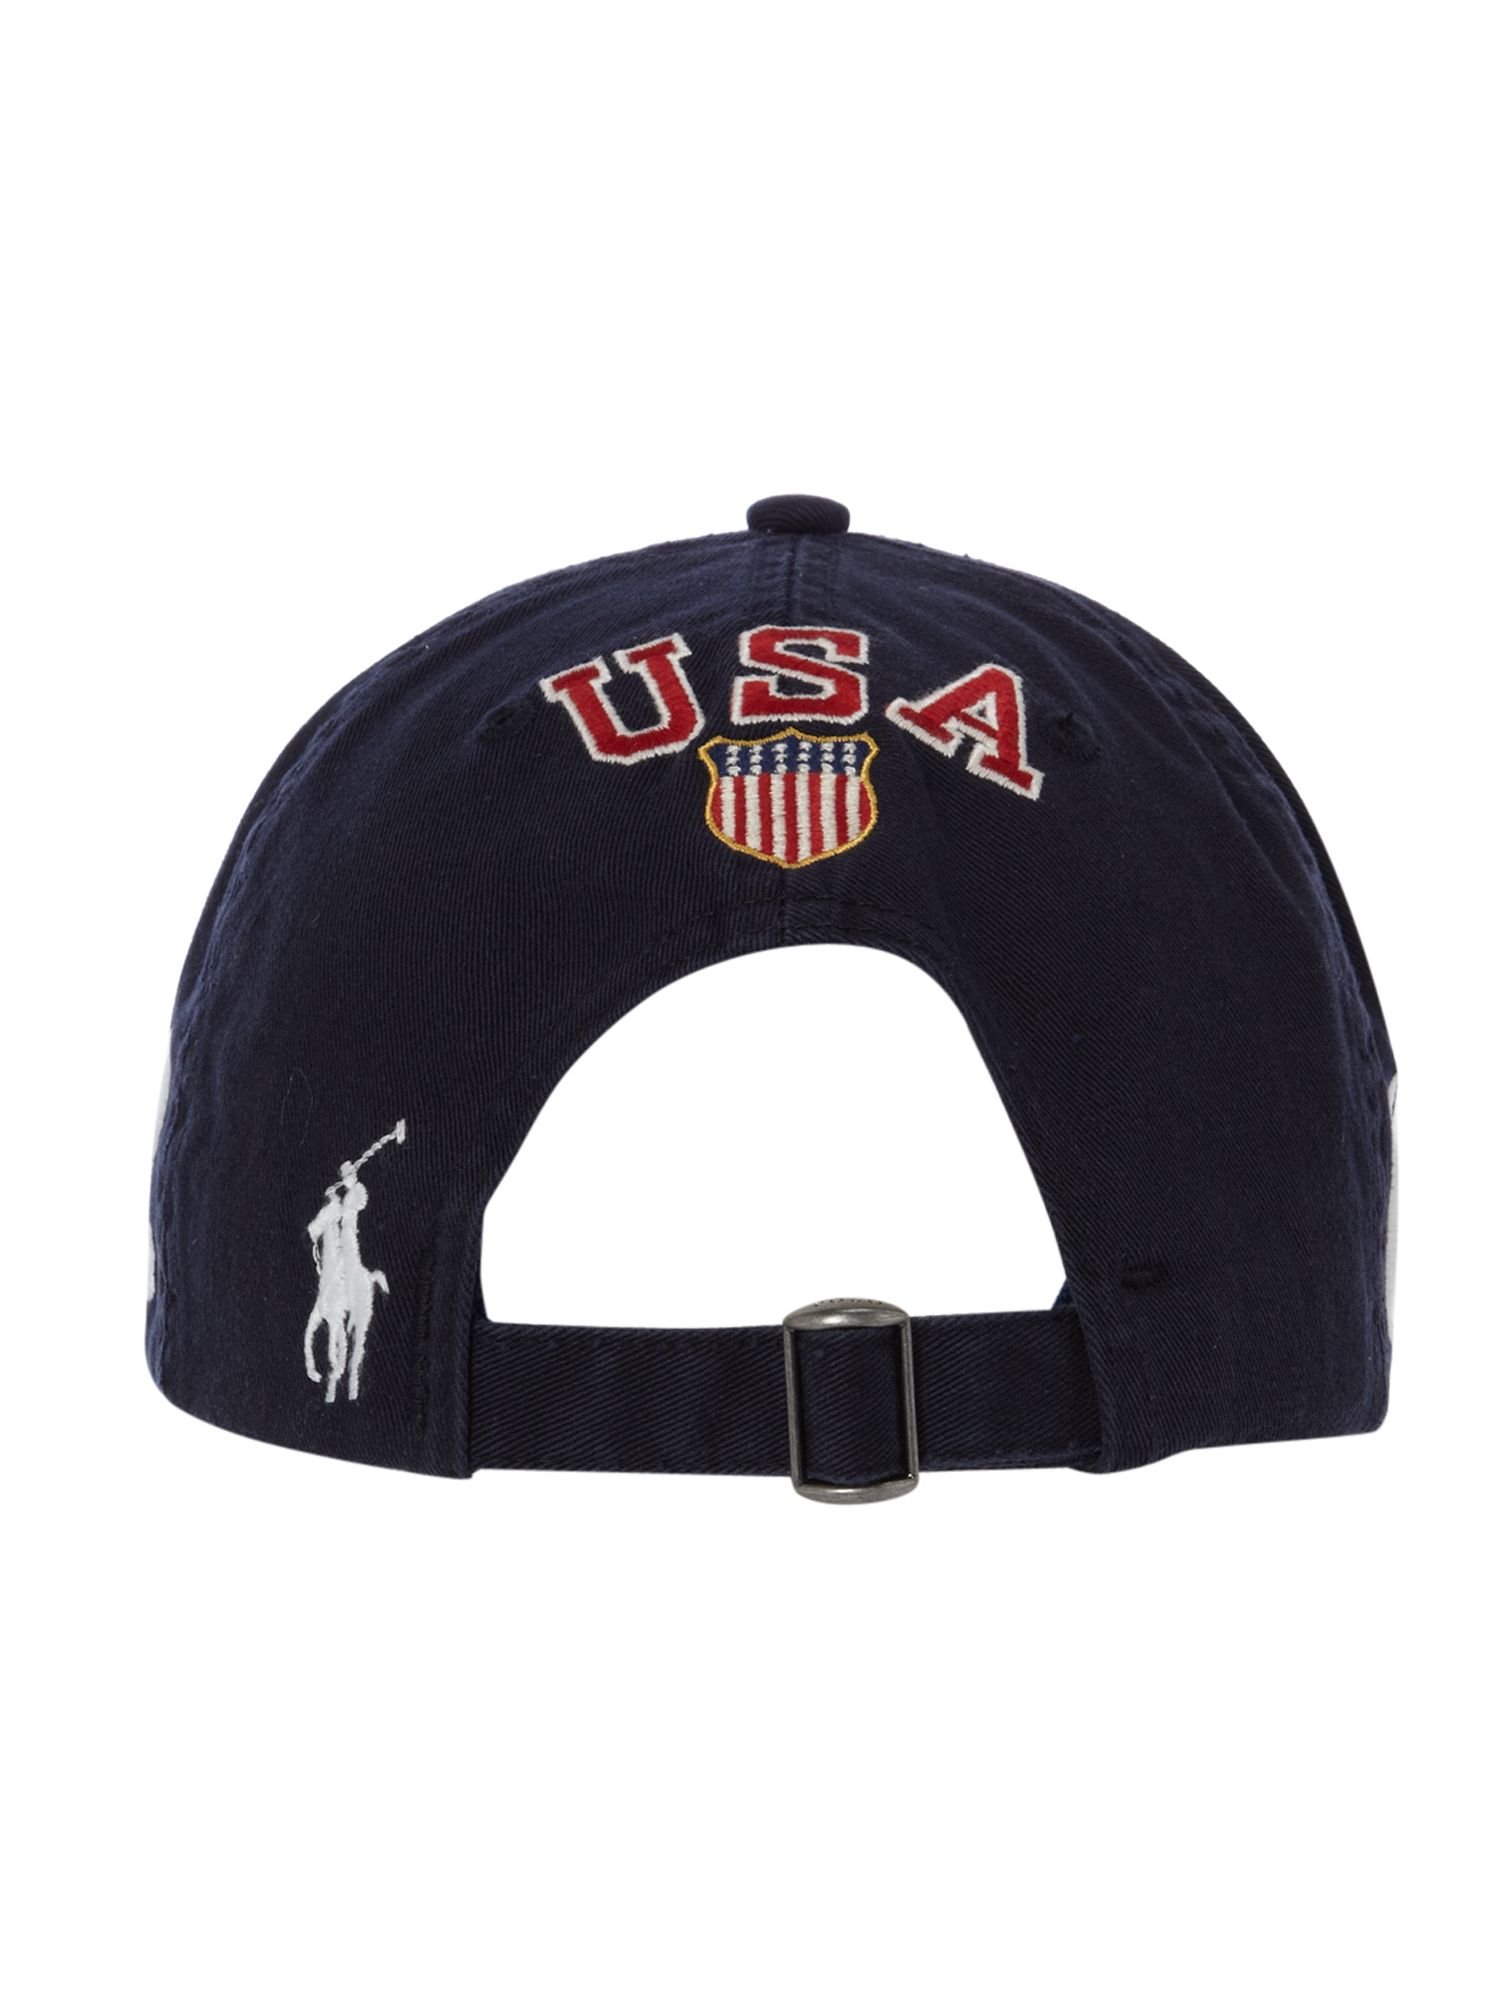 polo ralph lauren country cap us navy - WörterSee Public Relations 7d20f7a8b3